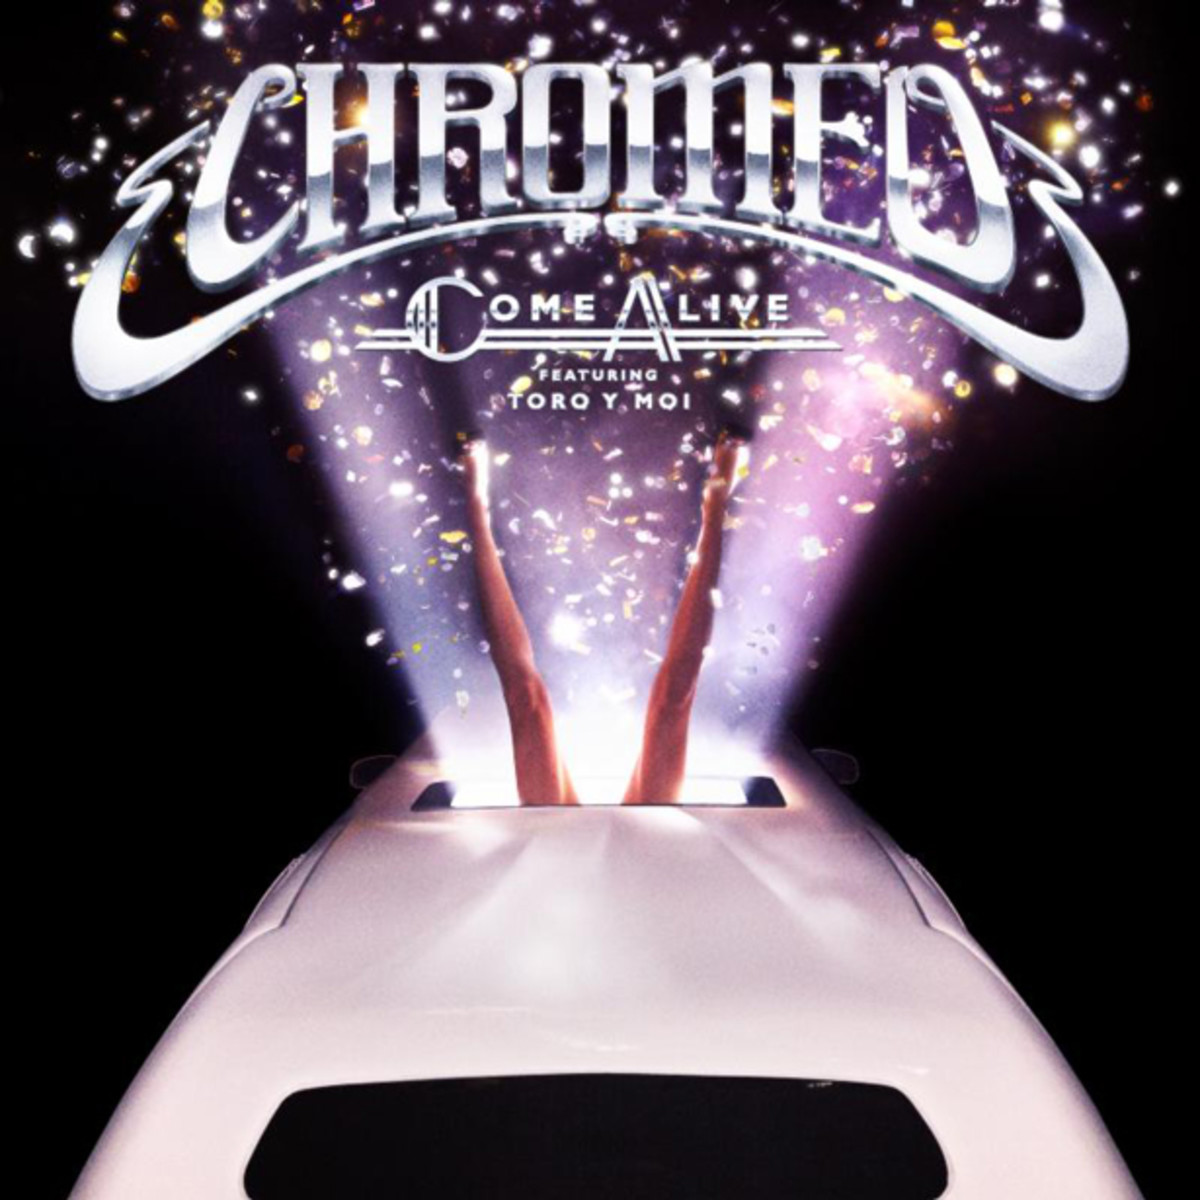 "Chromeo Teams Up With Toro Y Moi On Funky New Single ""Come Alive"" - New Electronic Music"